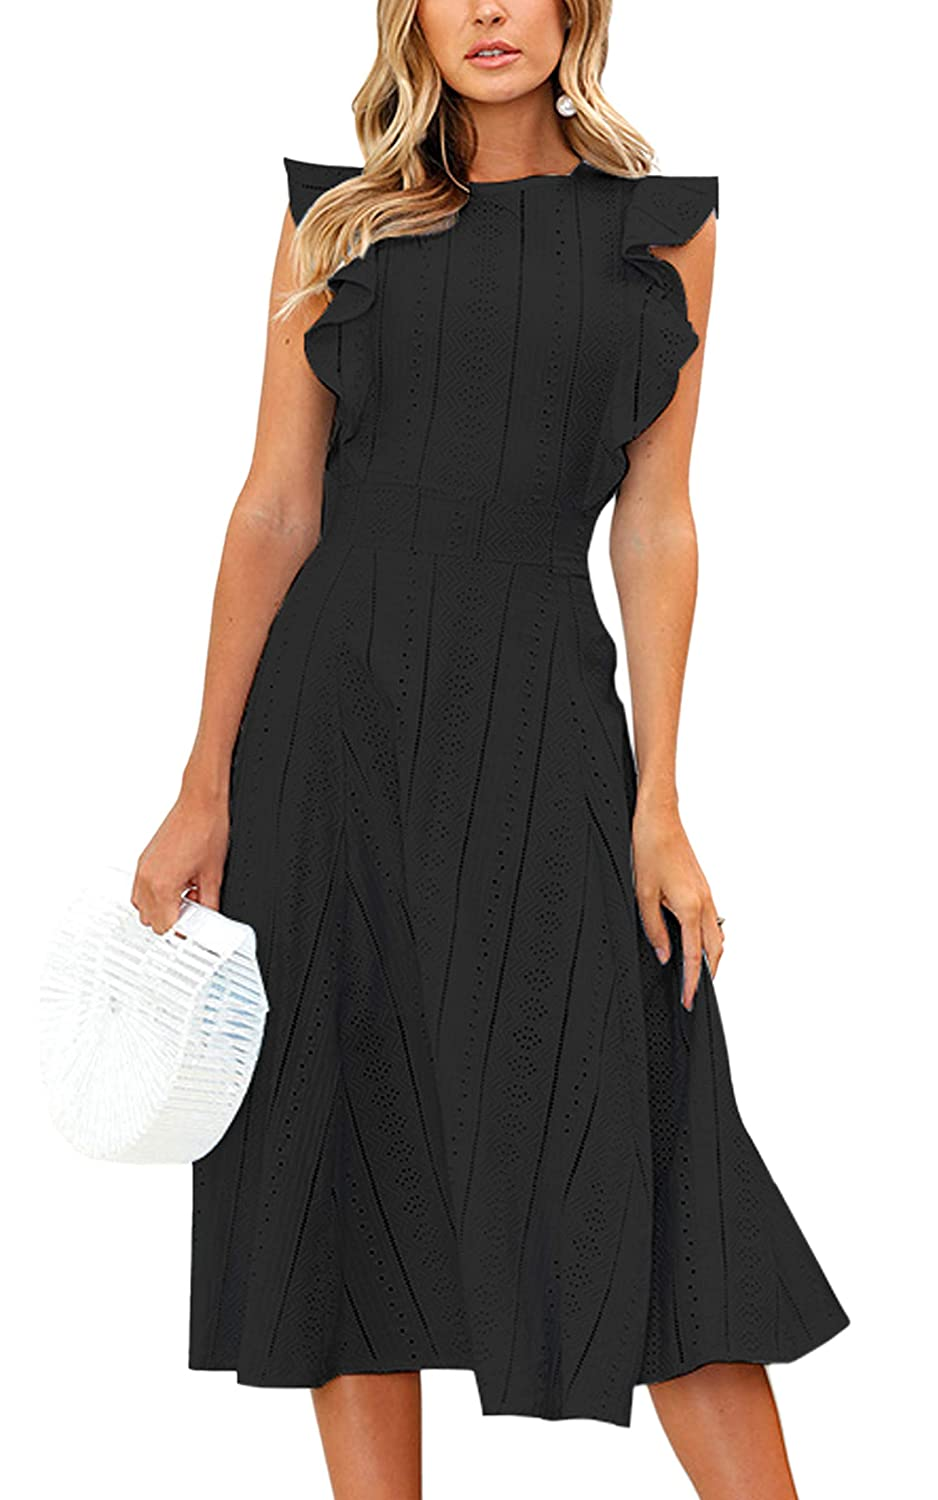 6d1e44cfda9b ECOWISH Womens Dresses Elegant Ruffles Cap Sleeves Summer A-Line Midi Dress  at Amazon Women's Clothing store: